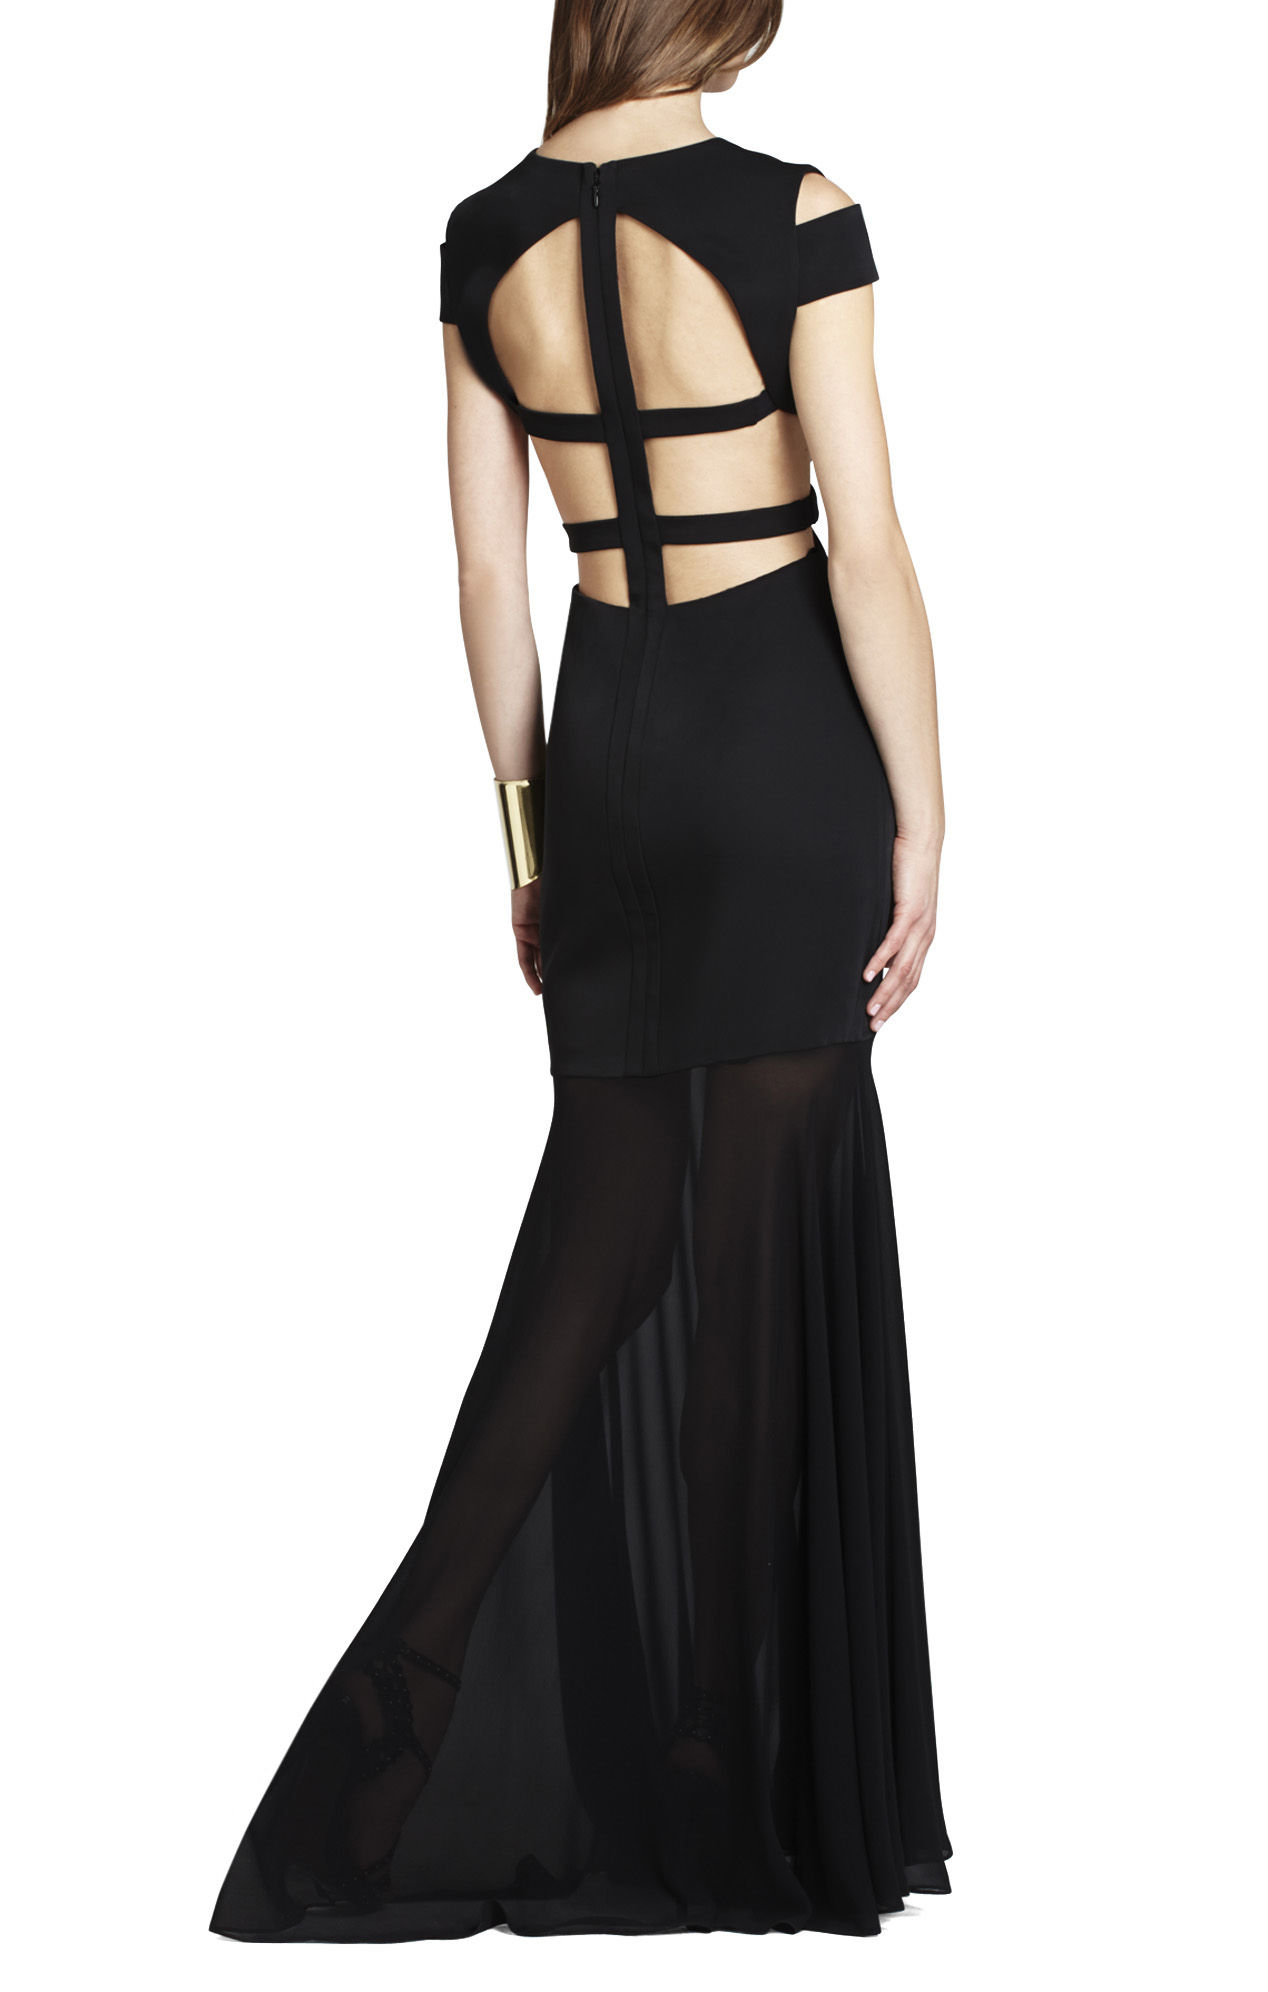 2016 Stylish Colthes Trends BCBG Dresses